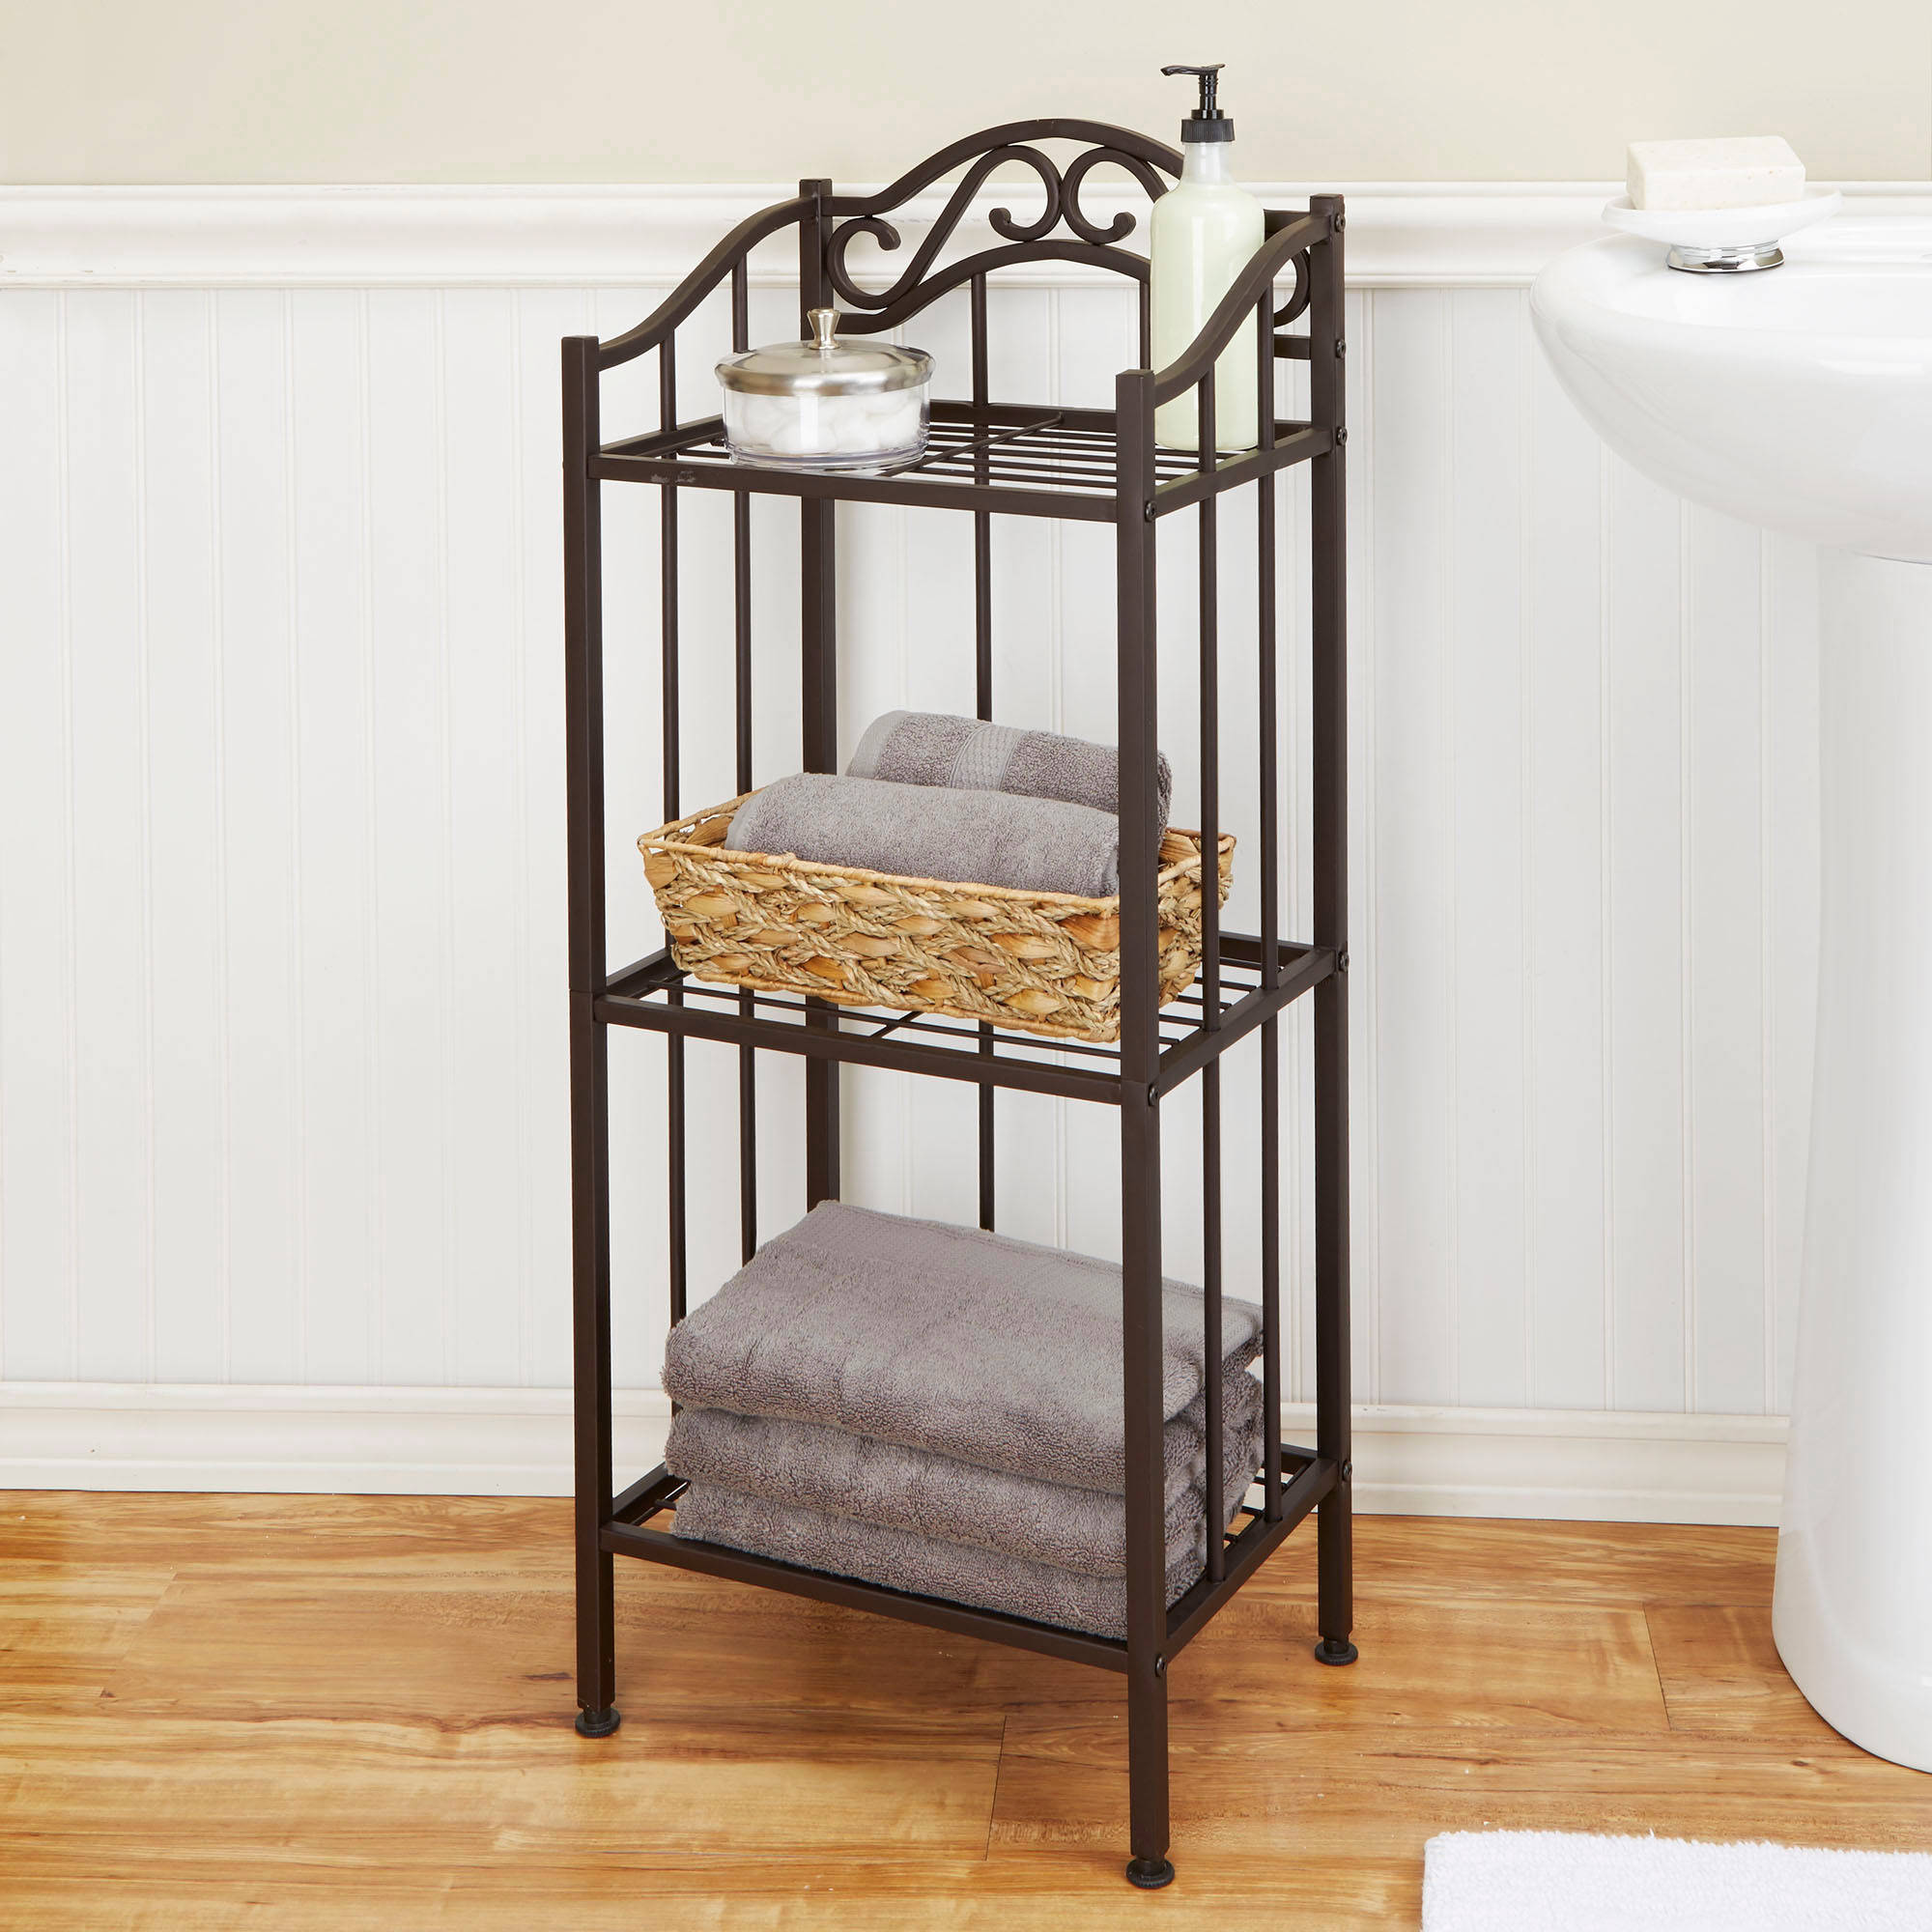 chapter bathroom floor shelf, bronze - walmart